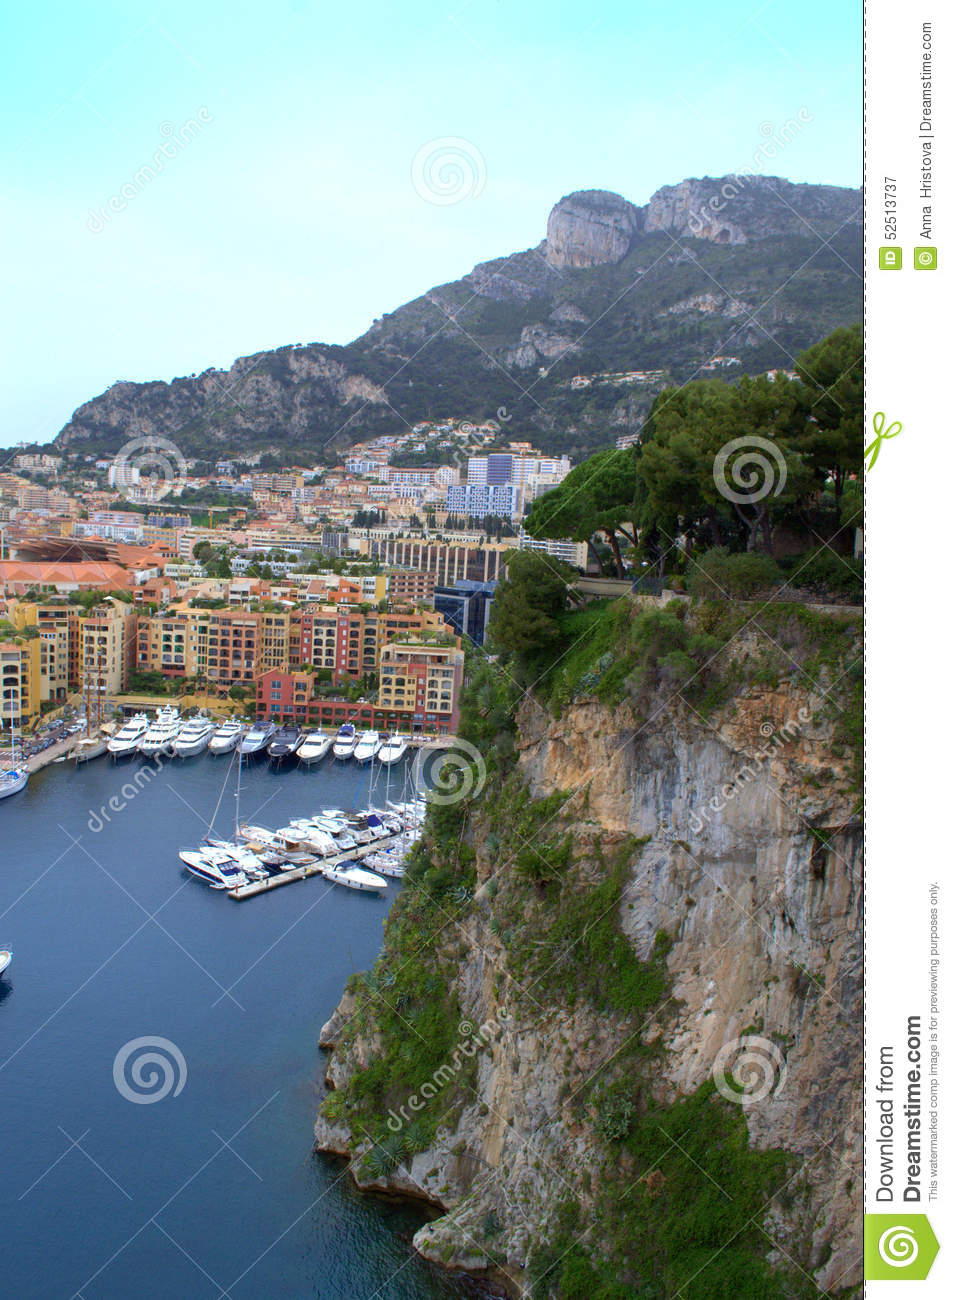 Stock Photo Monaco Bay View Monte Carlo Marina Residential Properties Picturesque Levee Image52513737 on oceanographic museum monte carlo